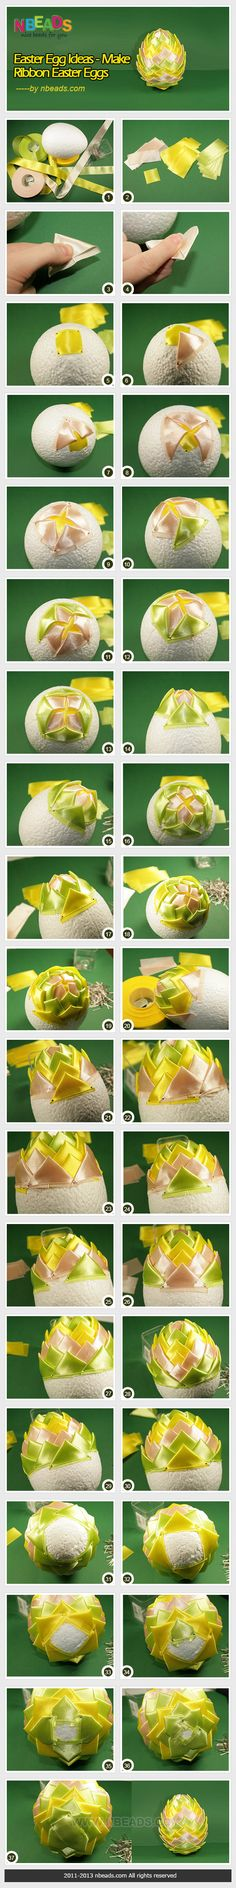 Easter Egg Ideas - Make Ribbon Easter Eggs